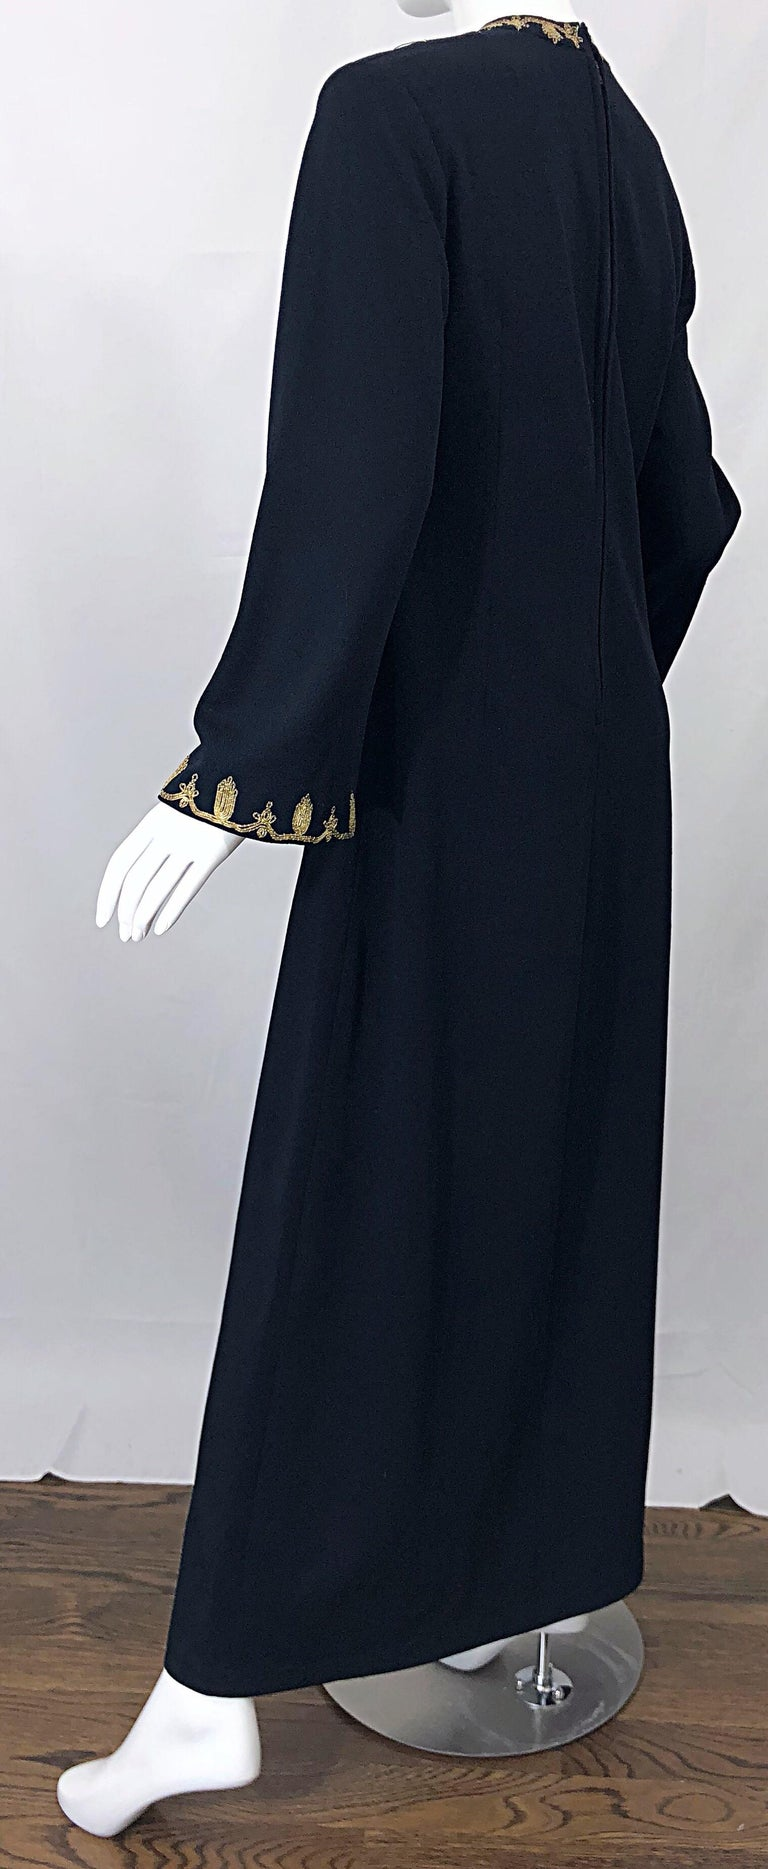 1970s Moroccan Black + Gold Metal Embroidered Vintage 70s Caftan Maxi Dress For Sale 4